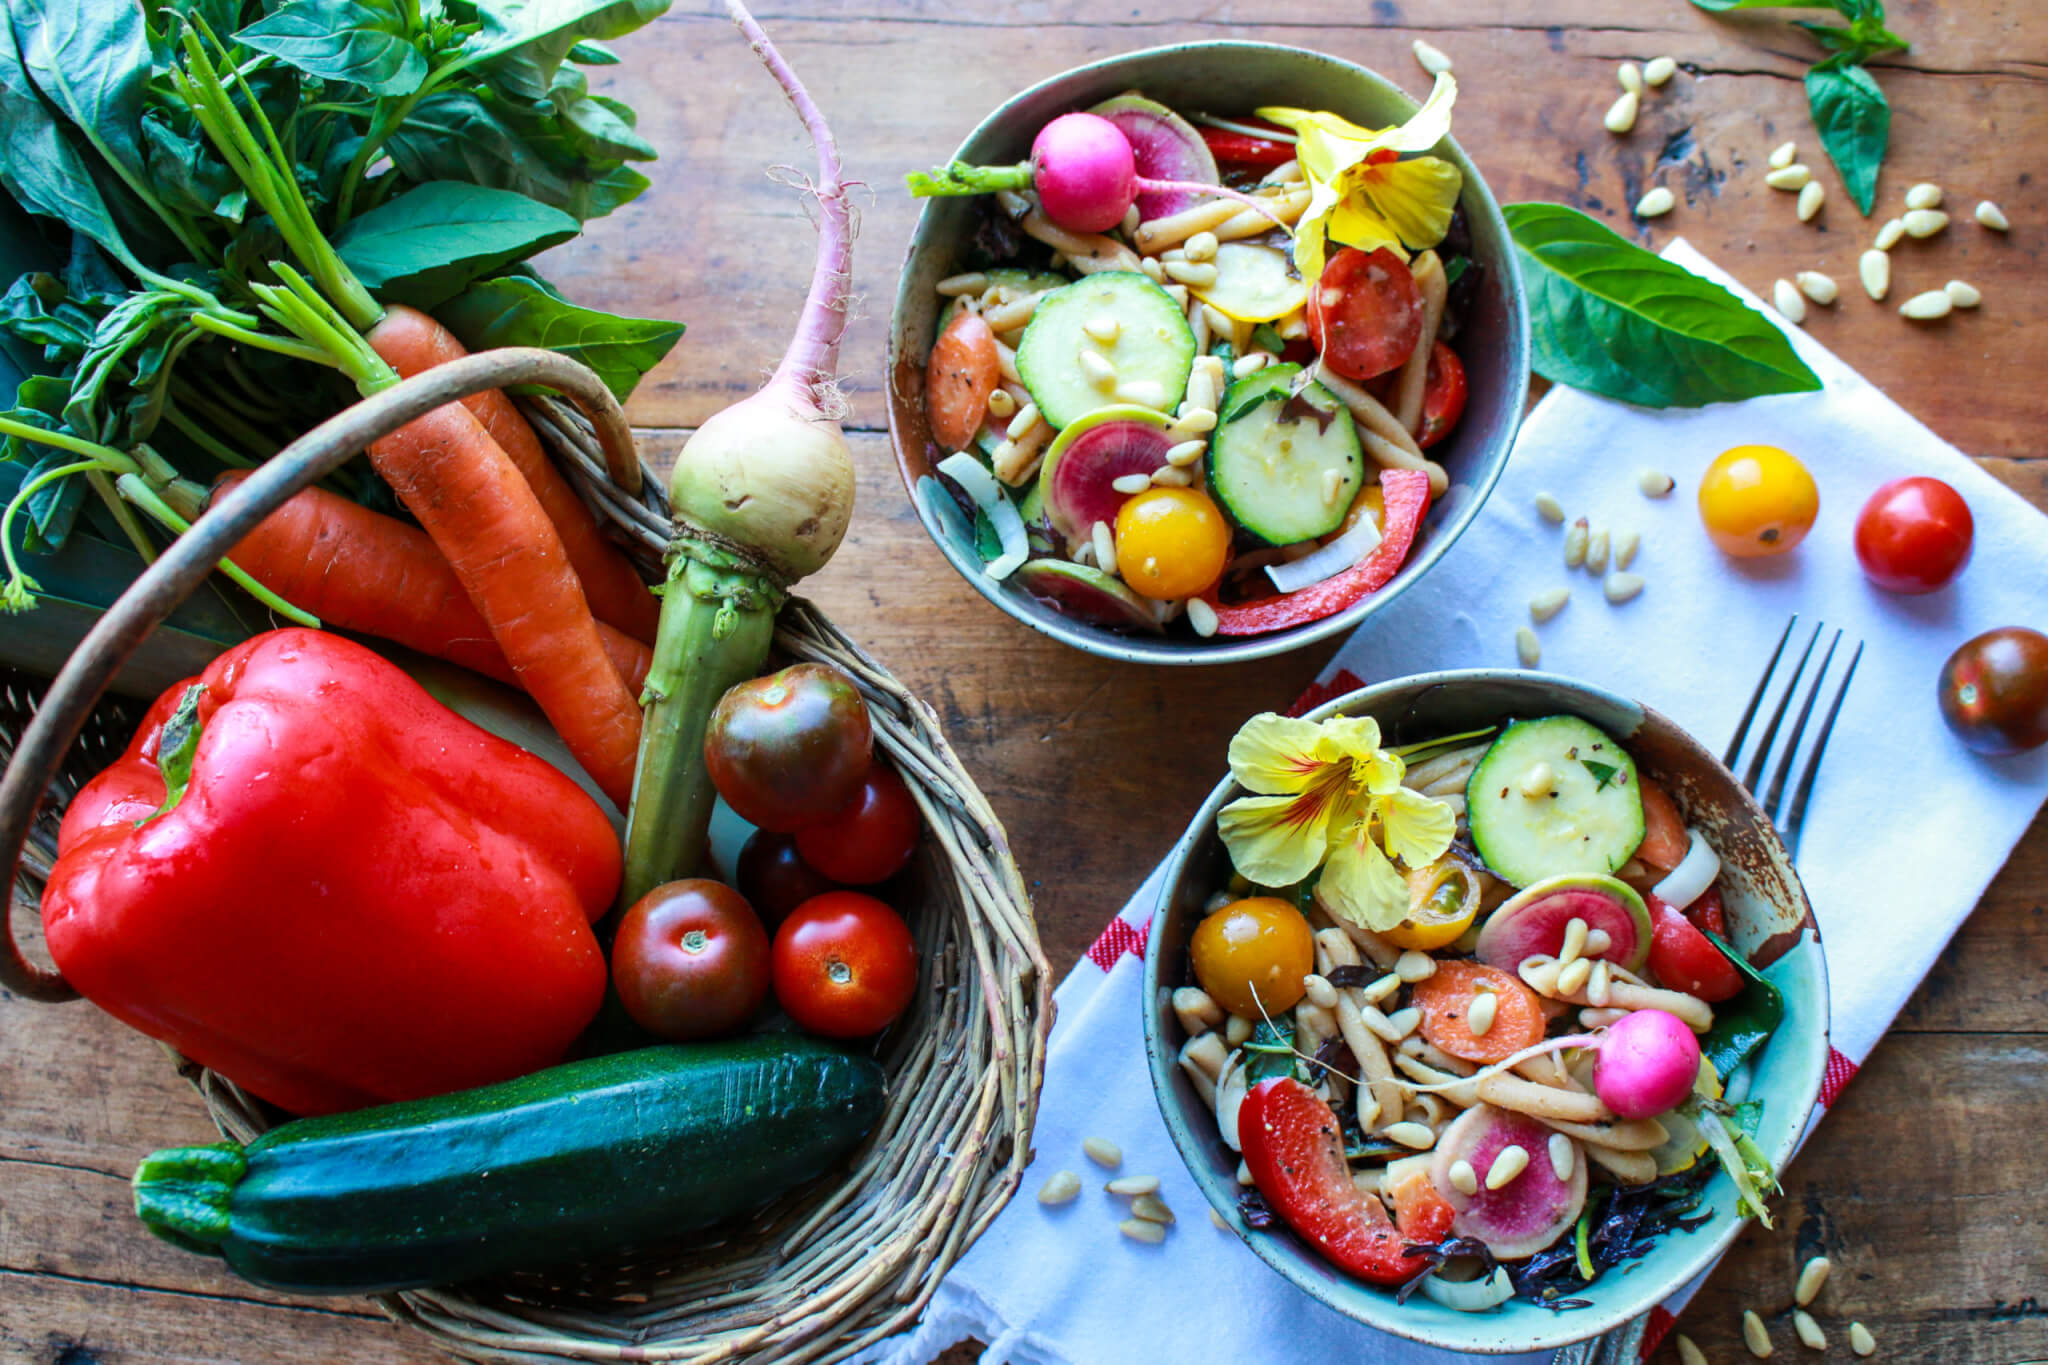 How to Eat a Healthy, Plant-Based Mediterranean Diet